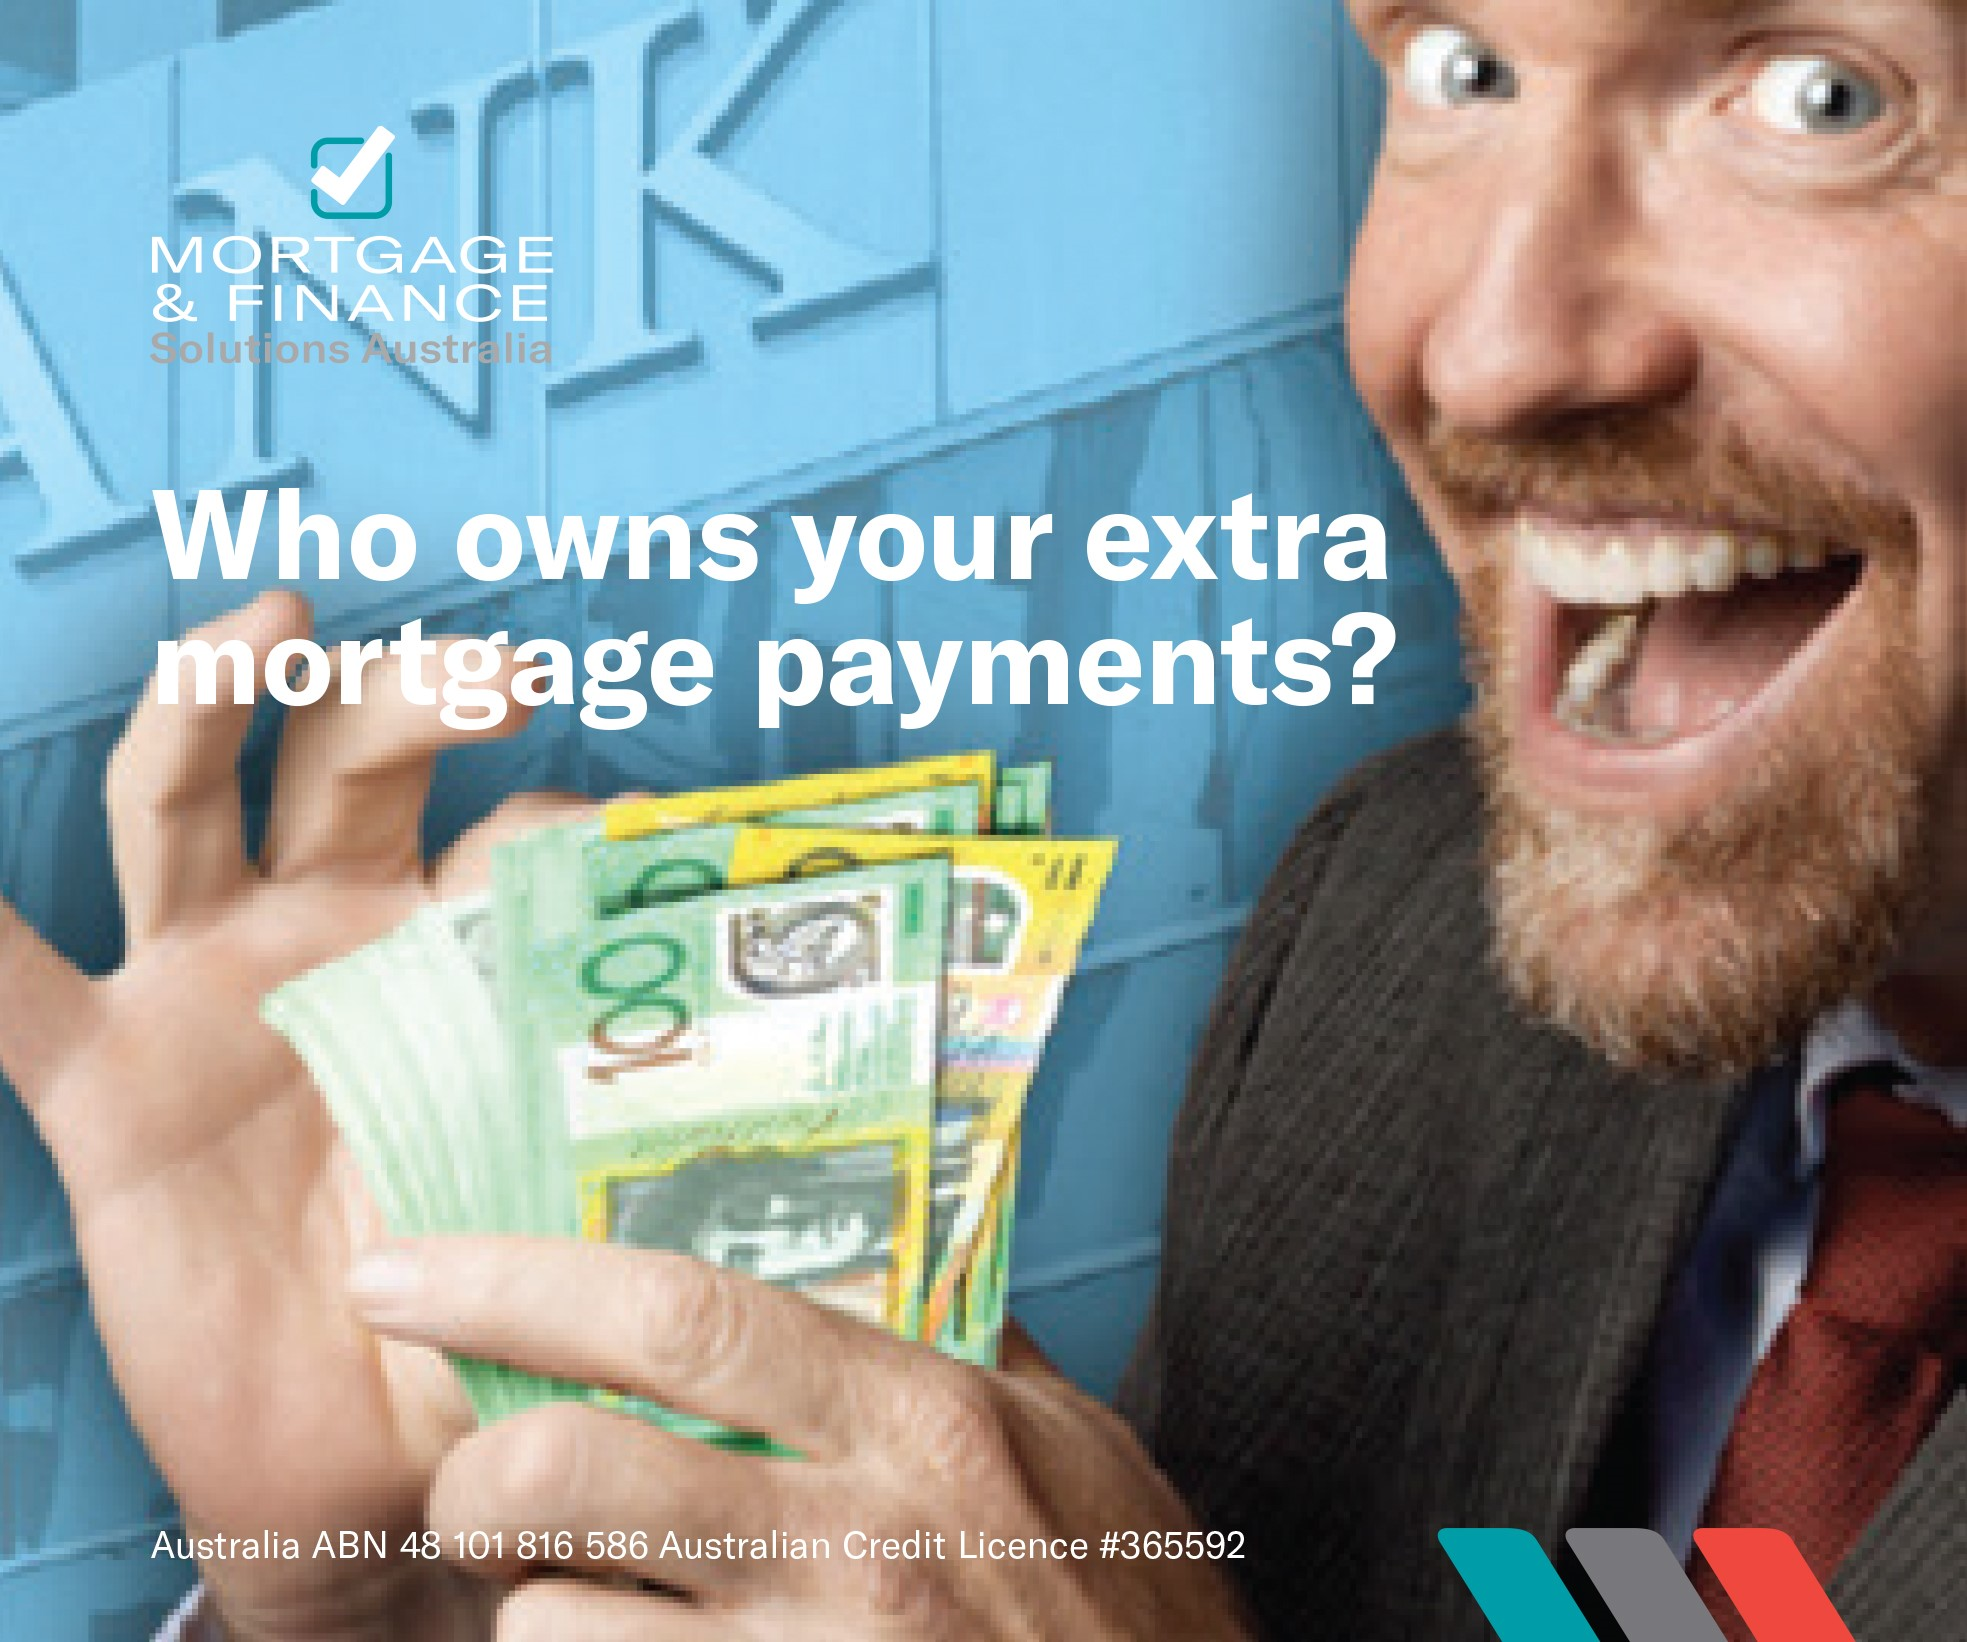 Who owns your extra mortgage payments?